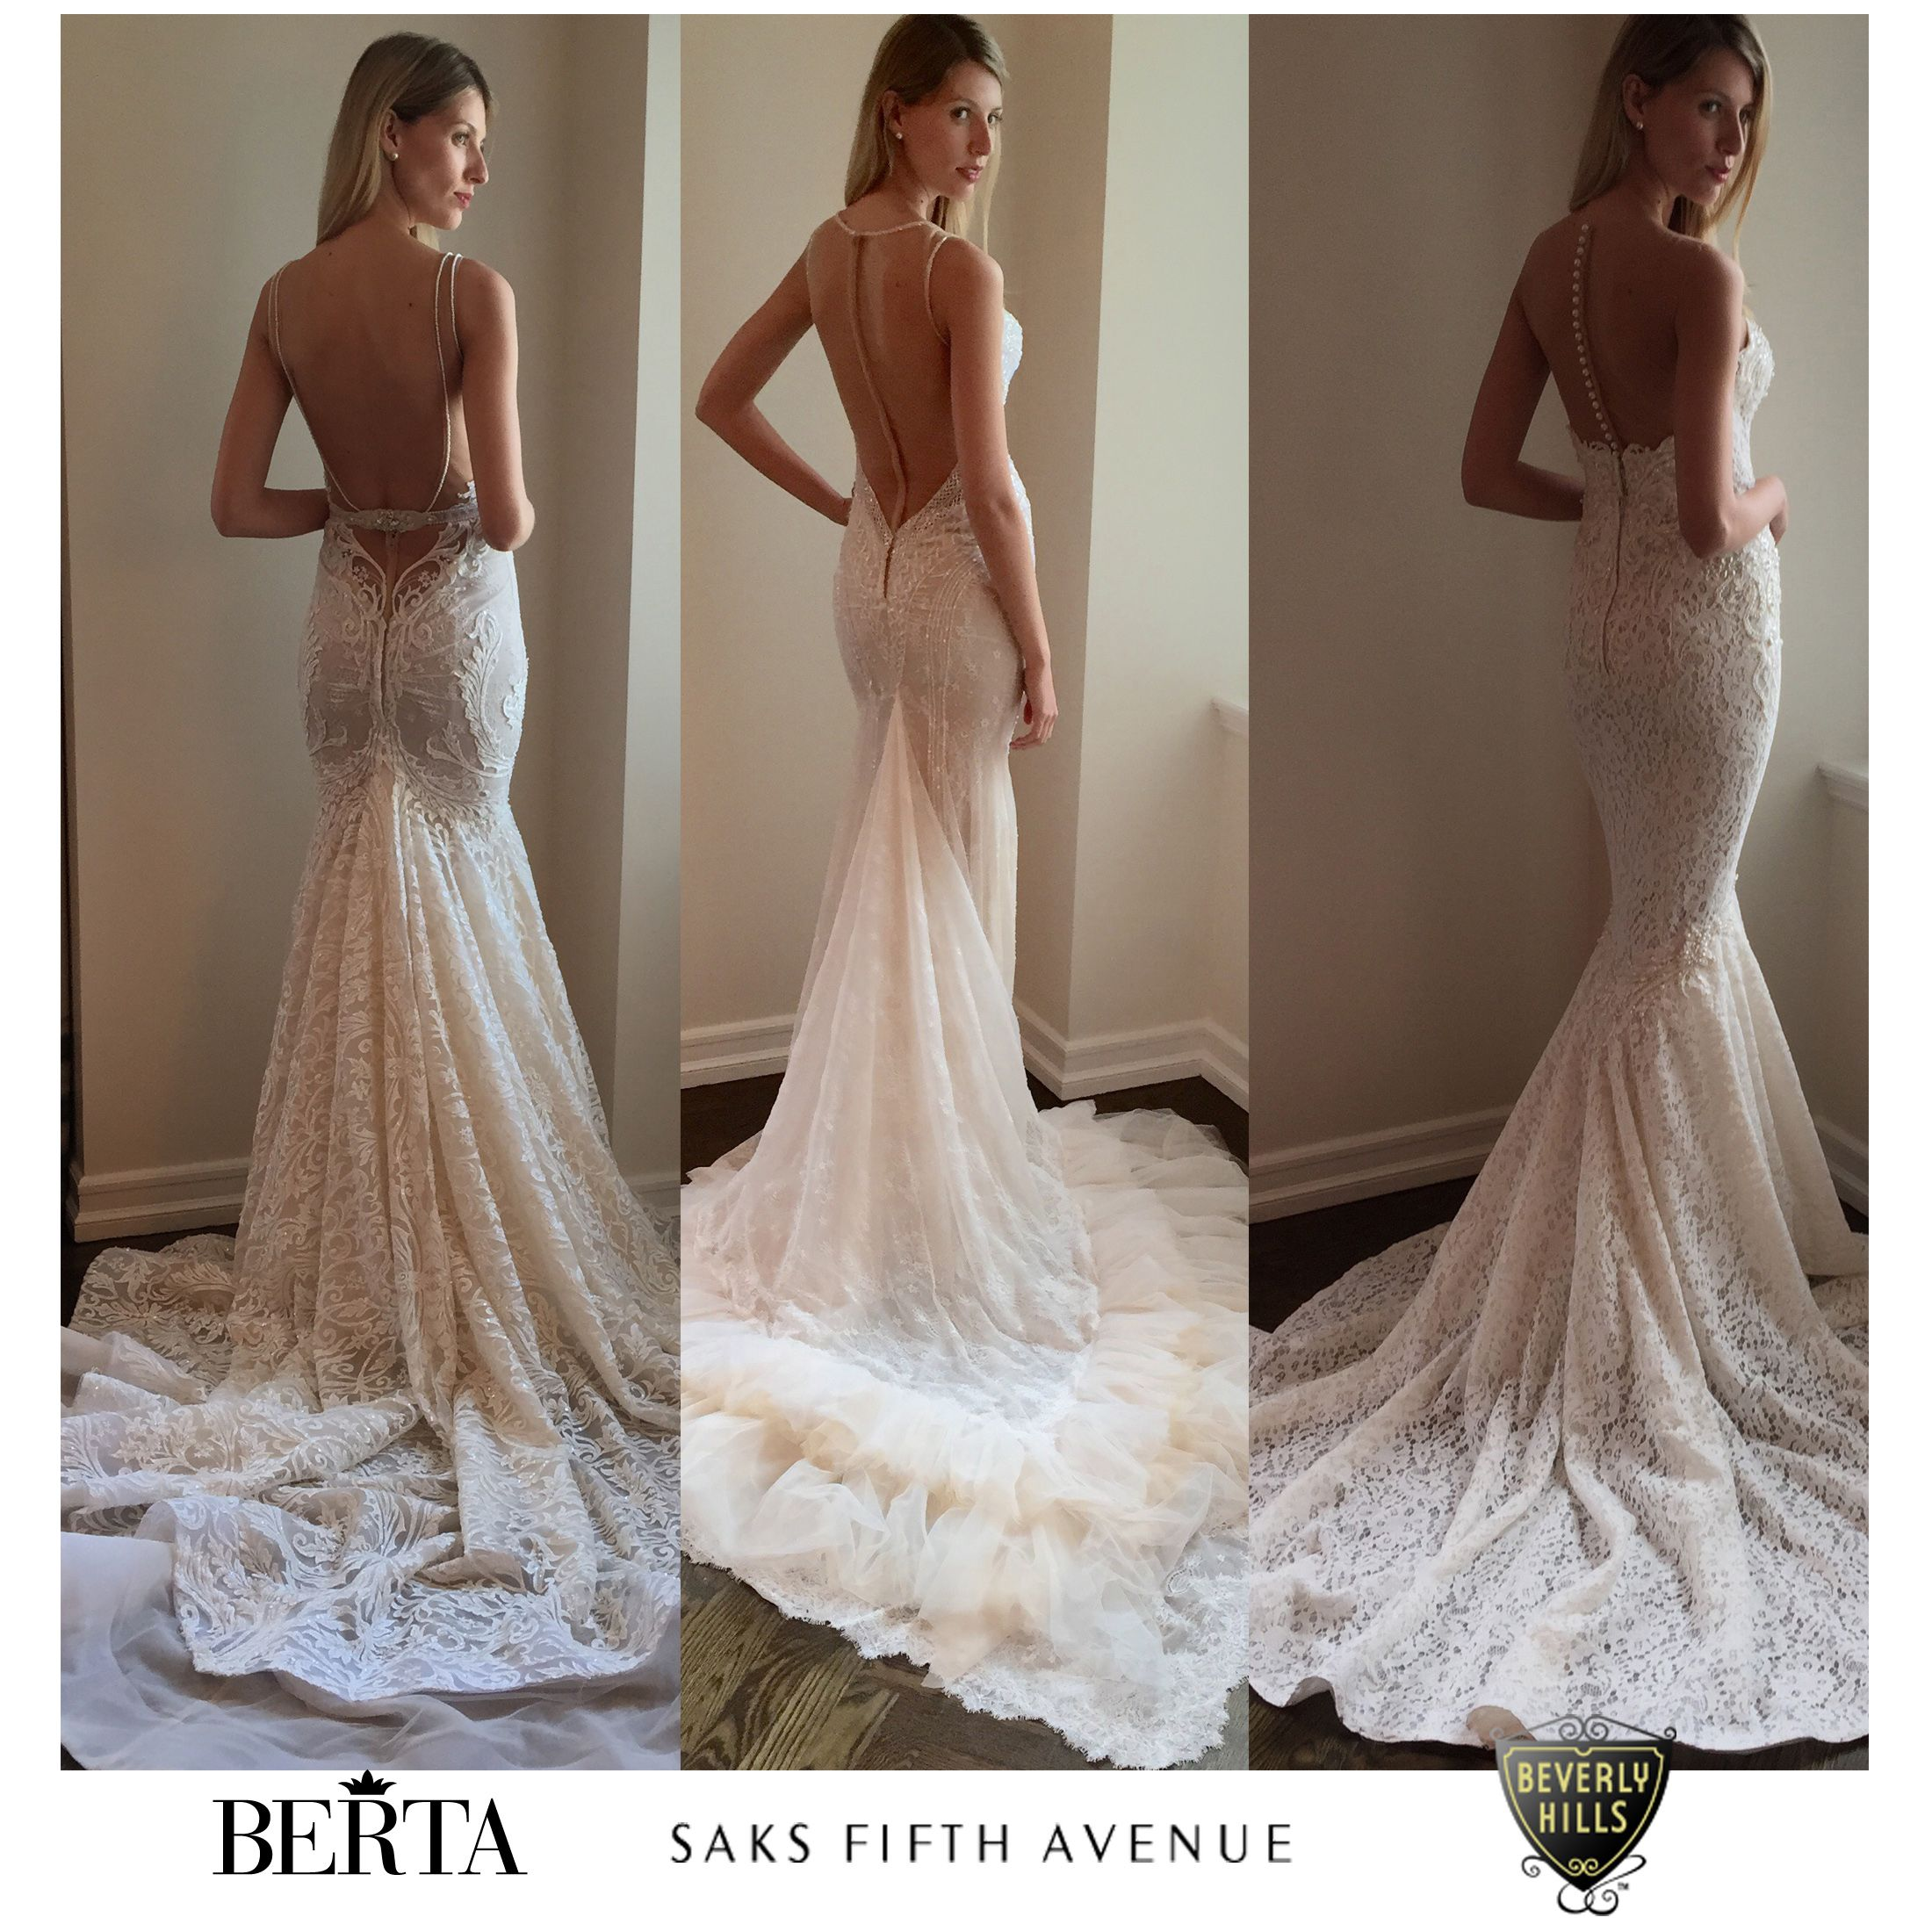 Beverly Hills trunk show. #BERTA at @saks Fifth Avenue. August 21-23 ...